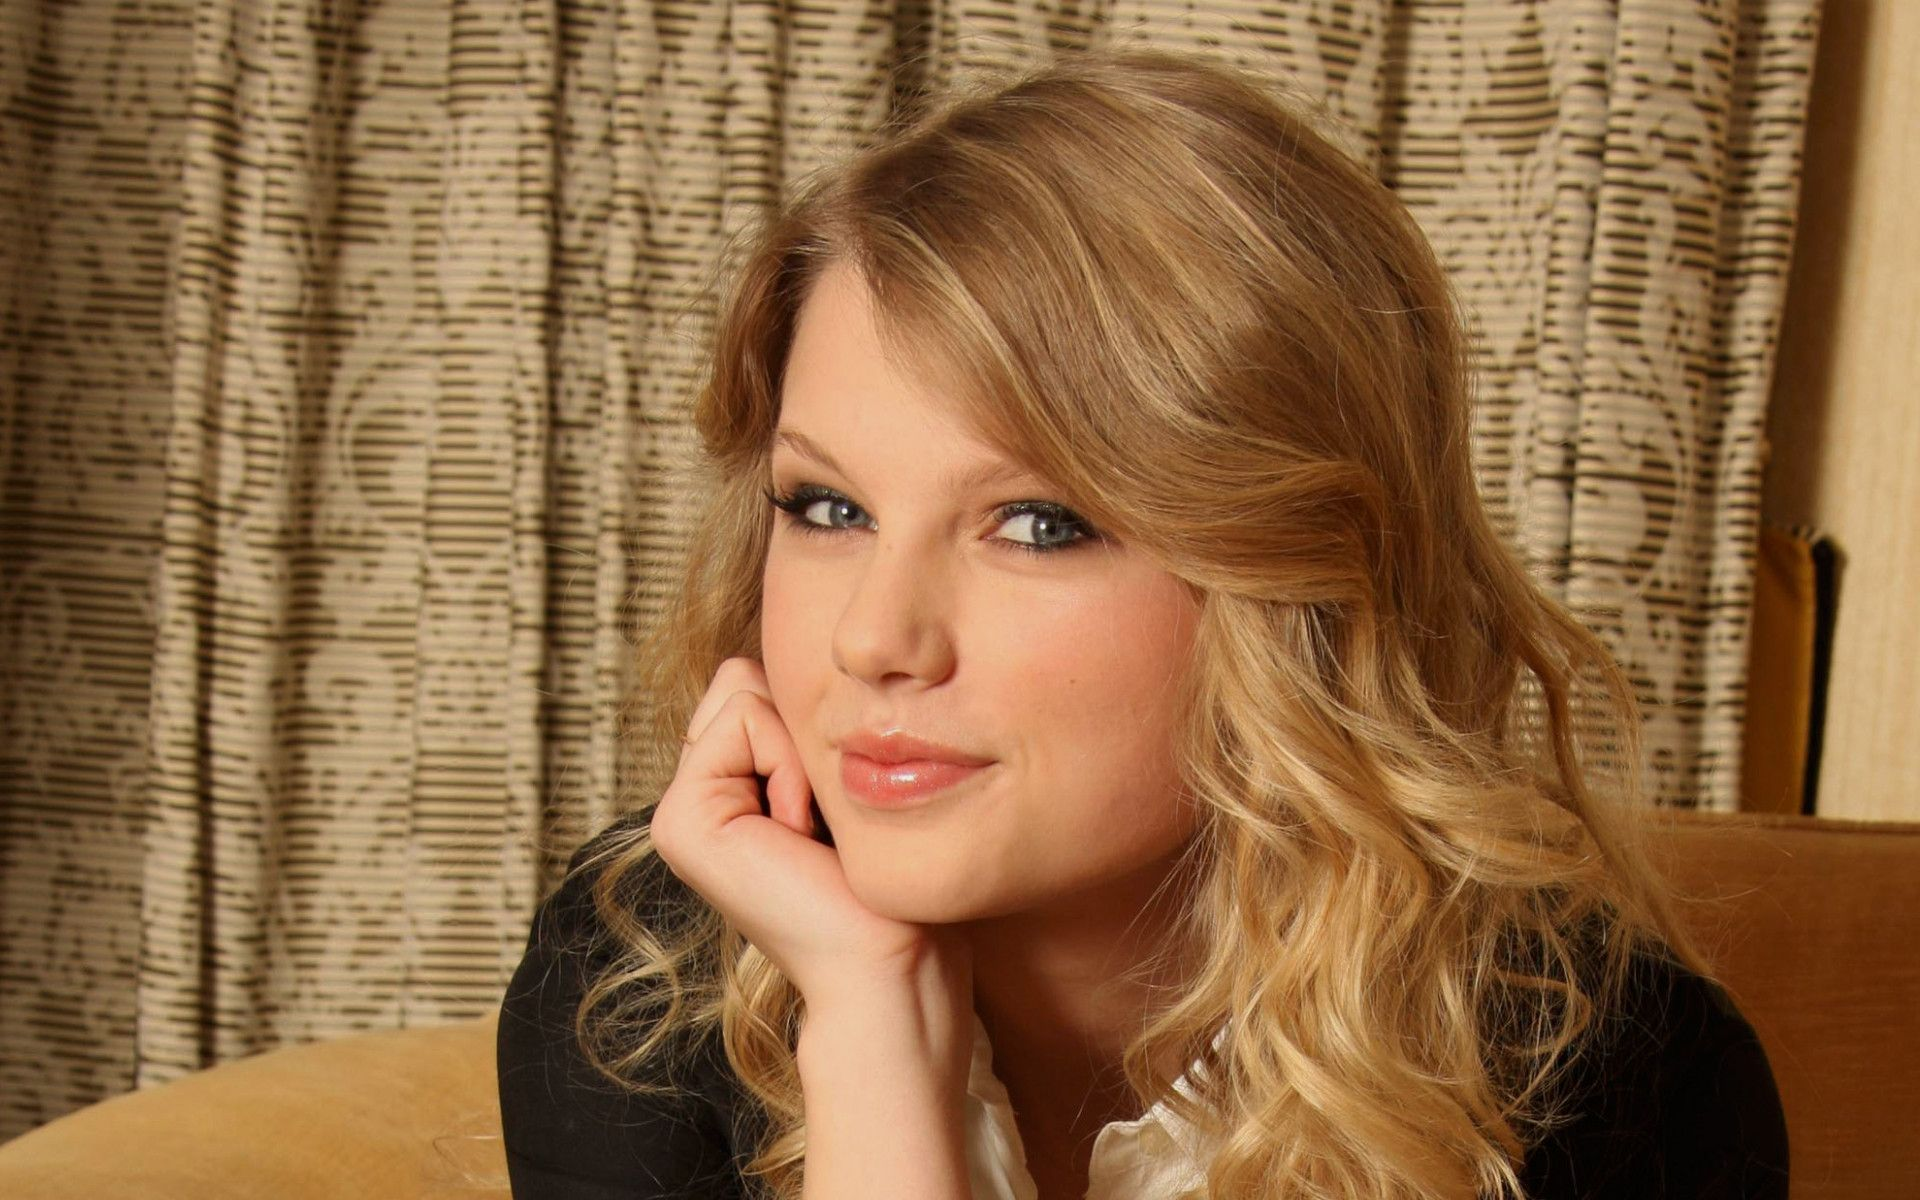 Taylor Swift Wallpapers HD Images Ten HD Wallpaper 1920x1200